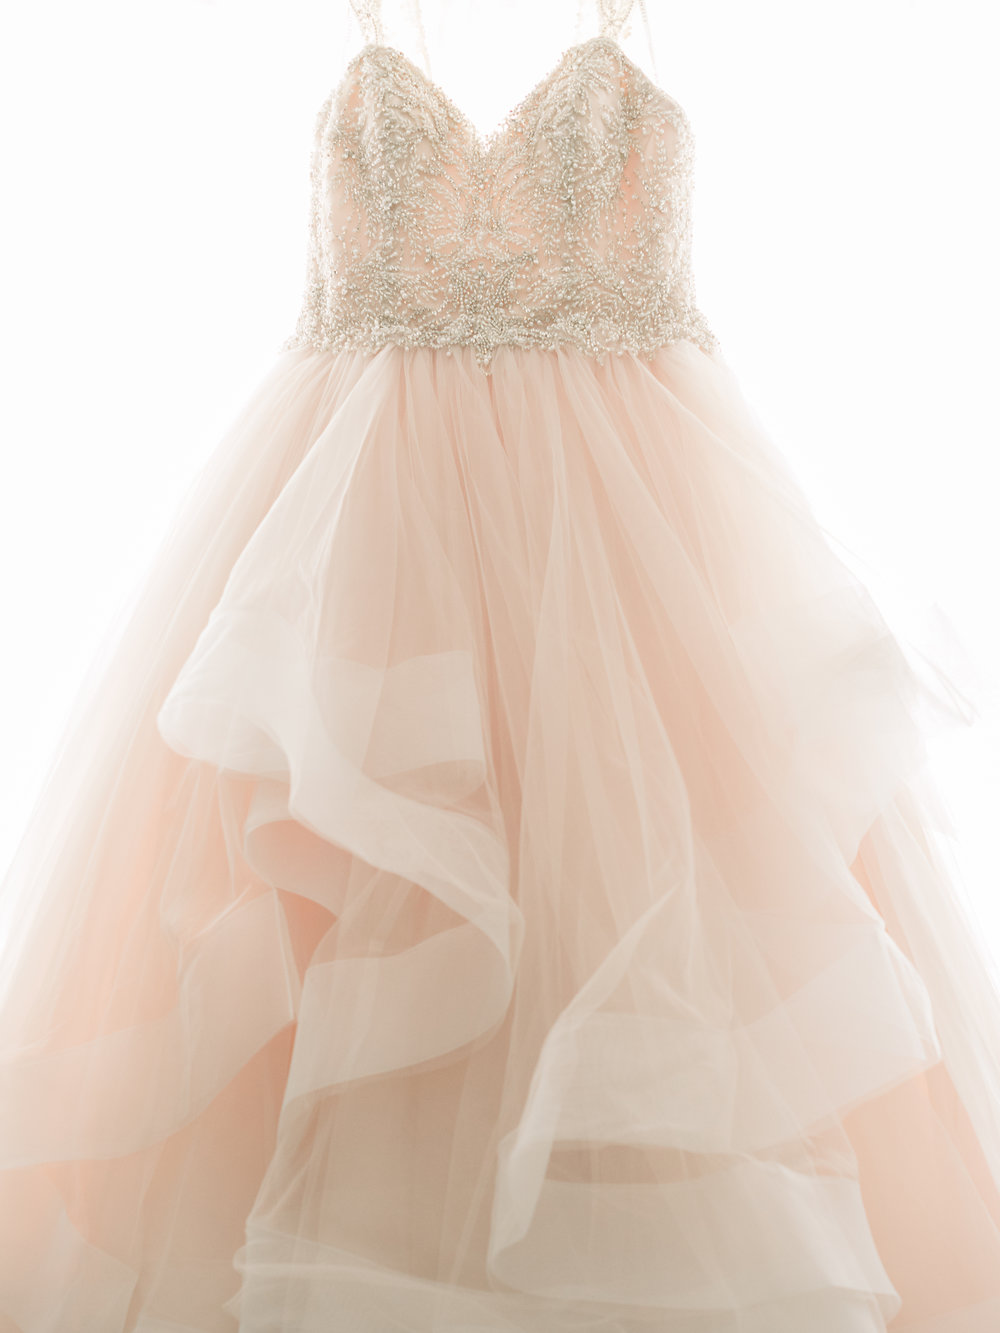 pink-wedding-gown.jpg